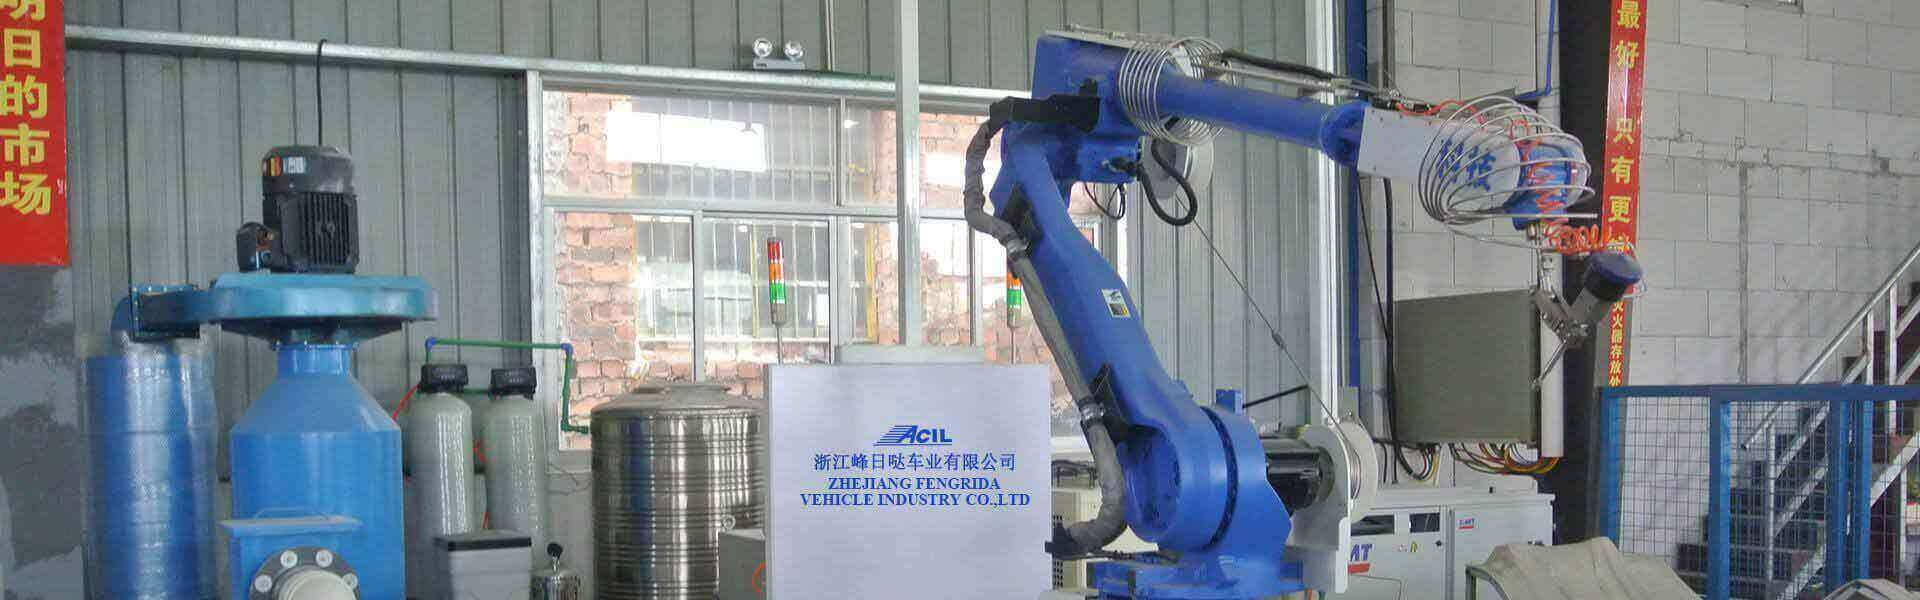 Inner Fender Factory Equipment